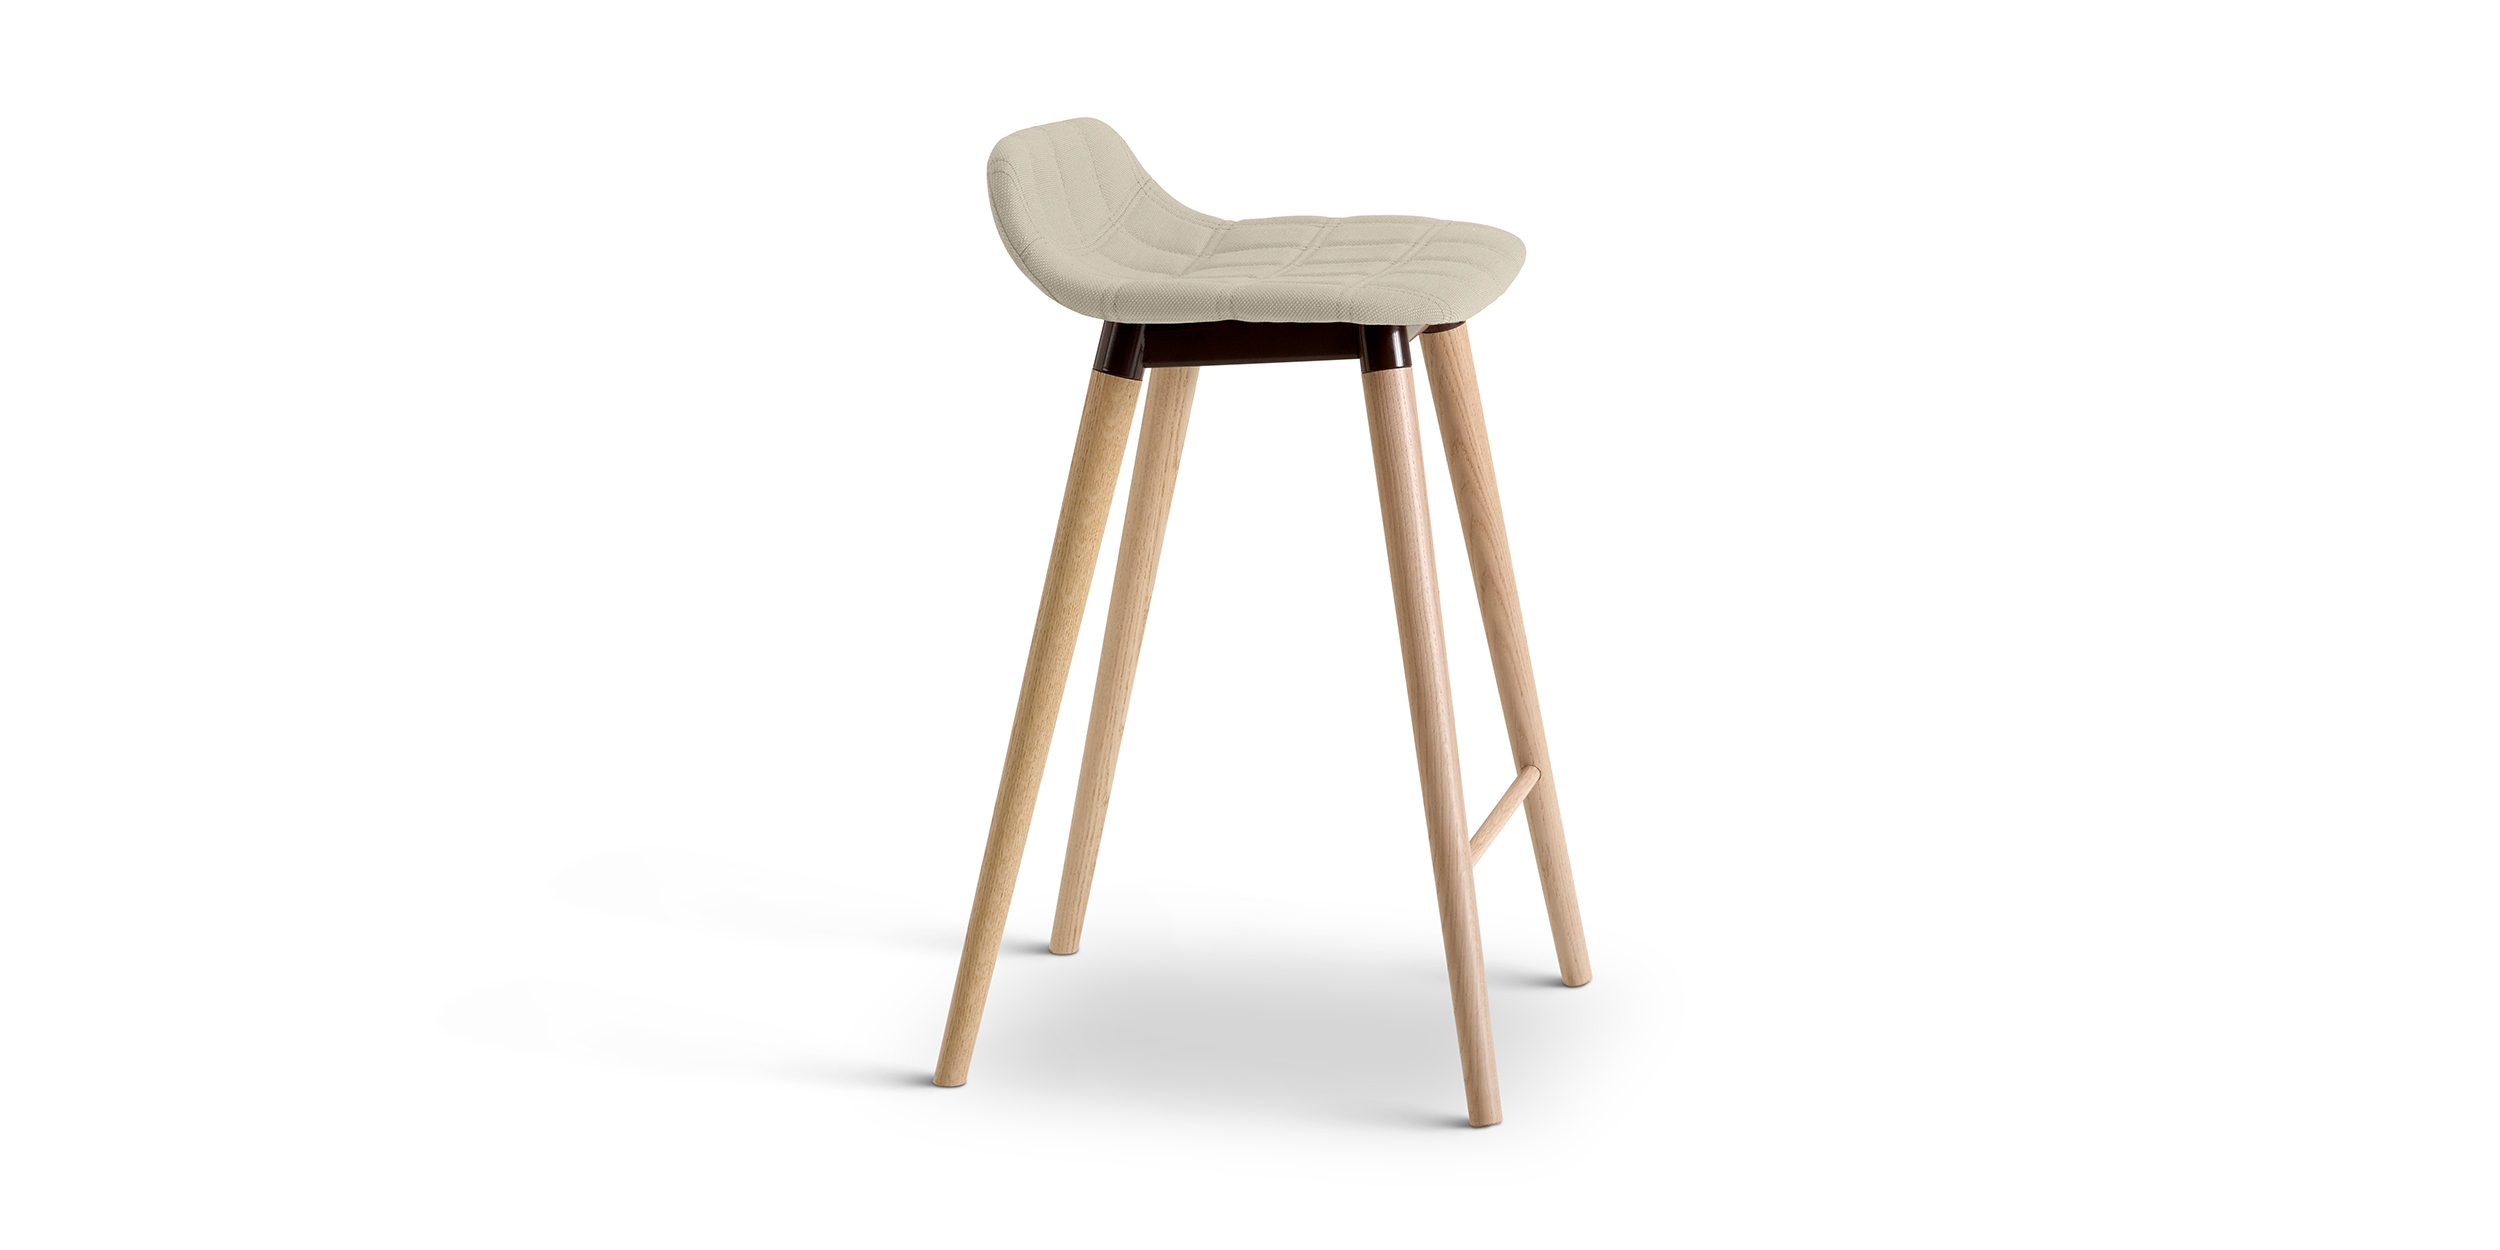 Bop Wood, Bar stool by Knudsen Berg Hindenes